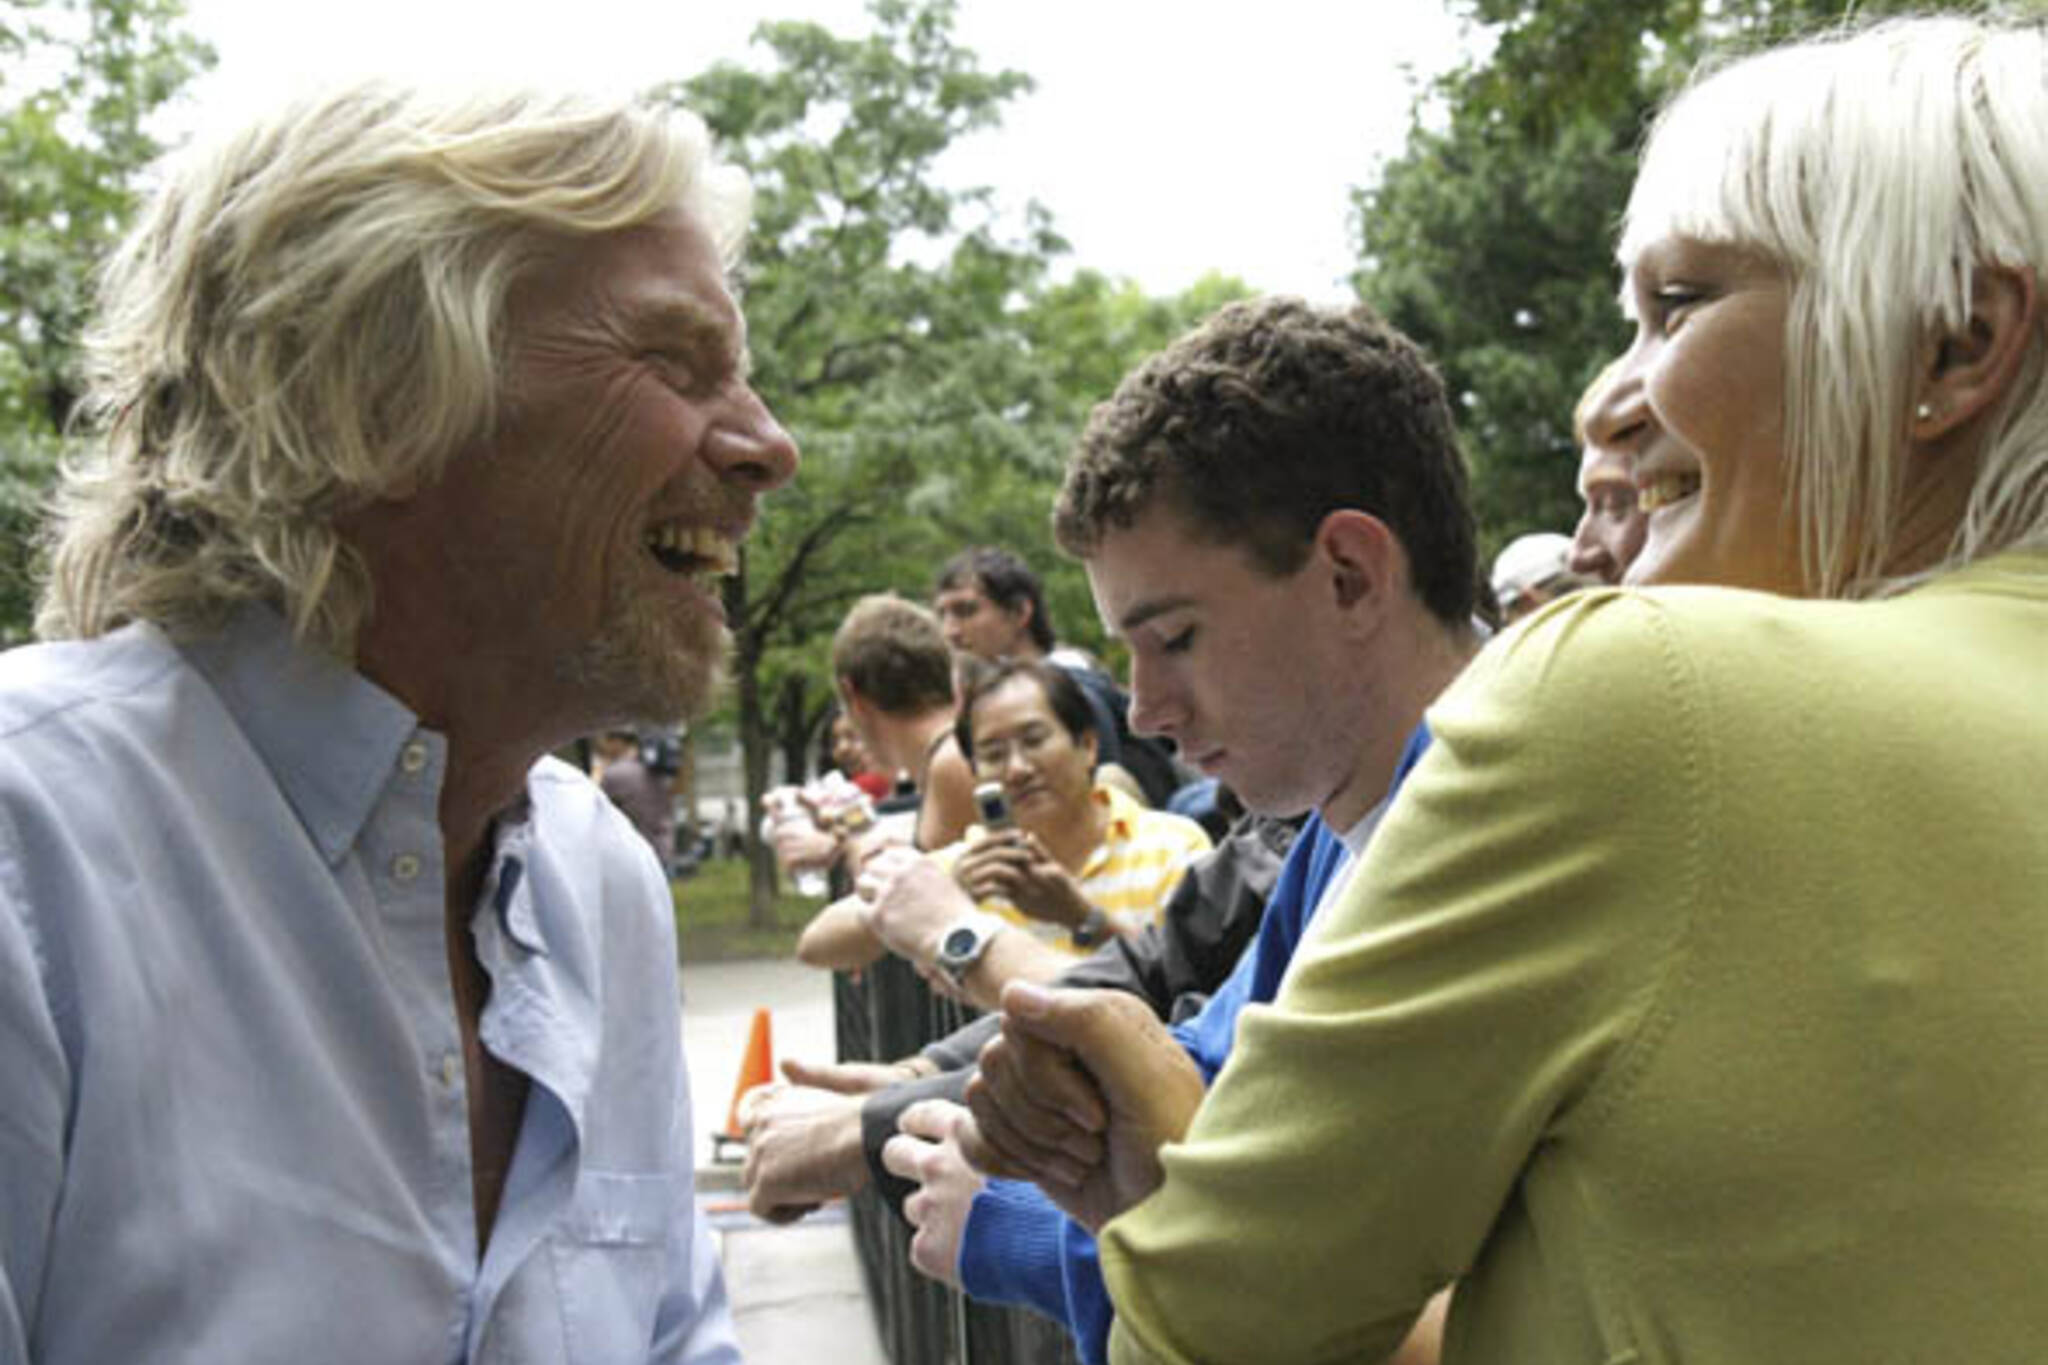 Richard Branson meets his fans at the Virgin Music Festival in Toronto